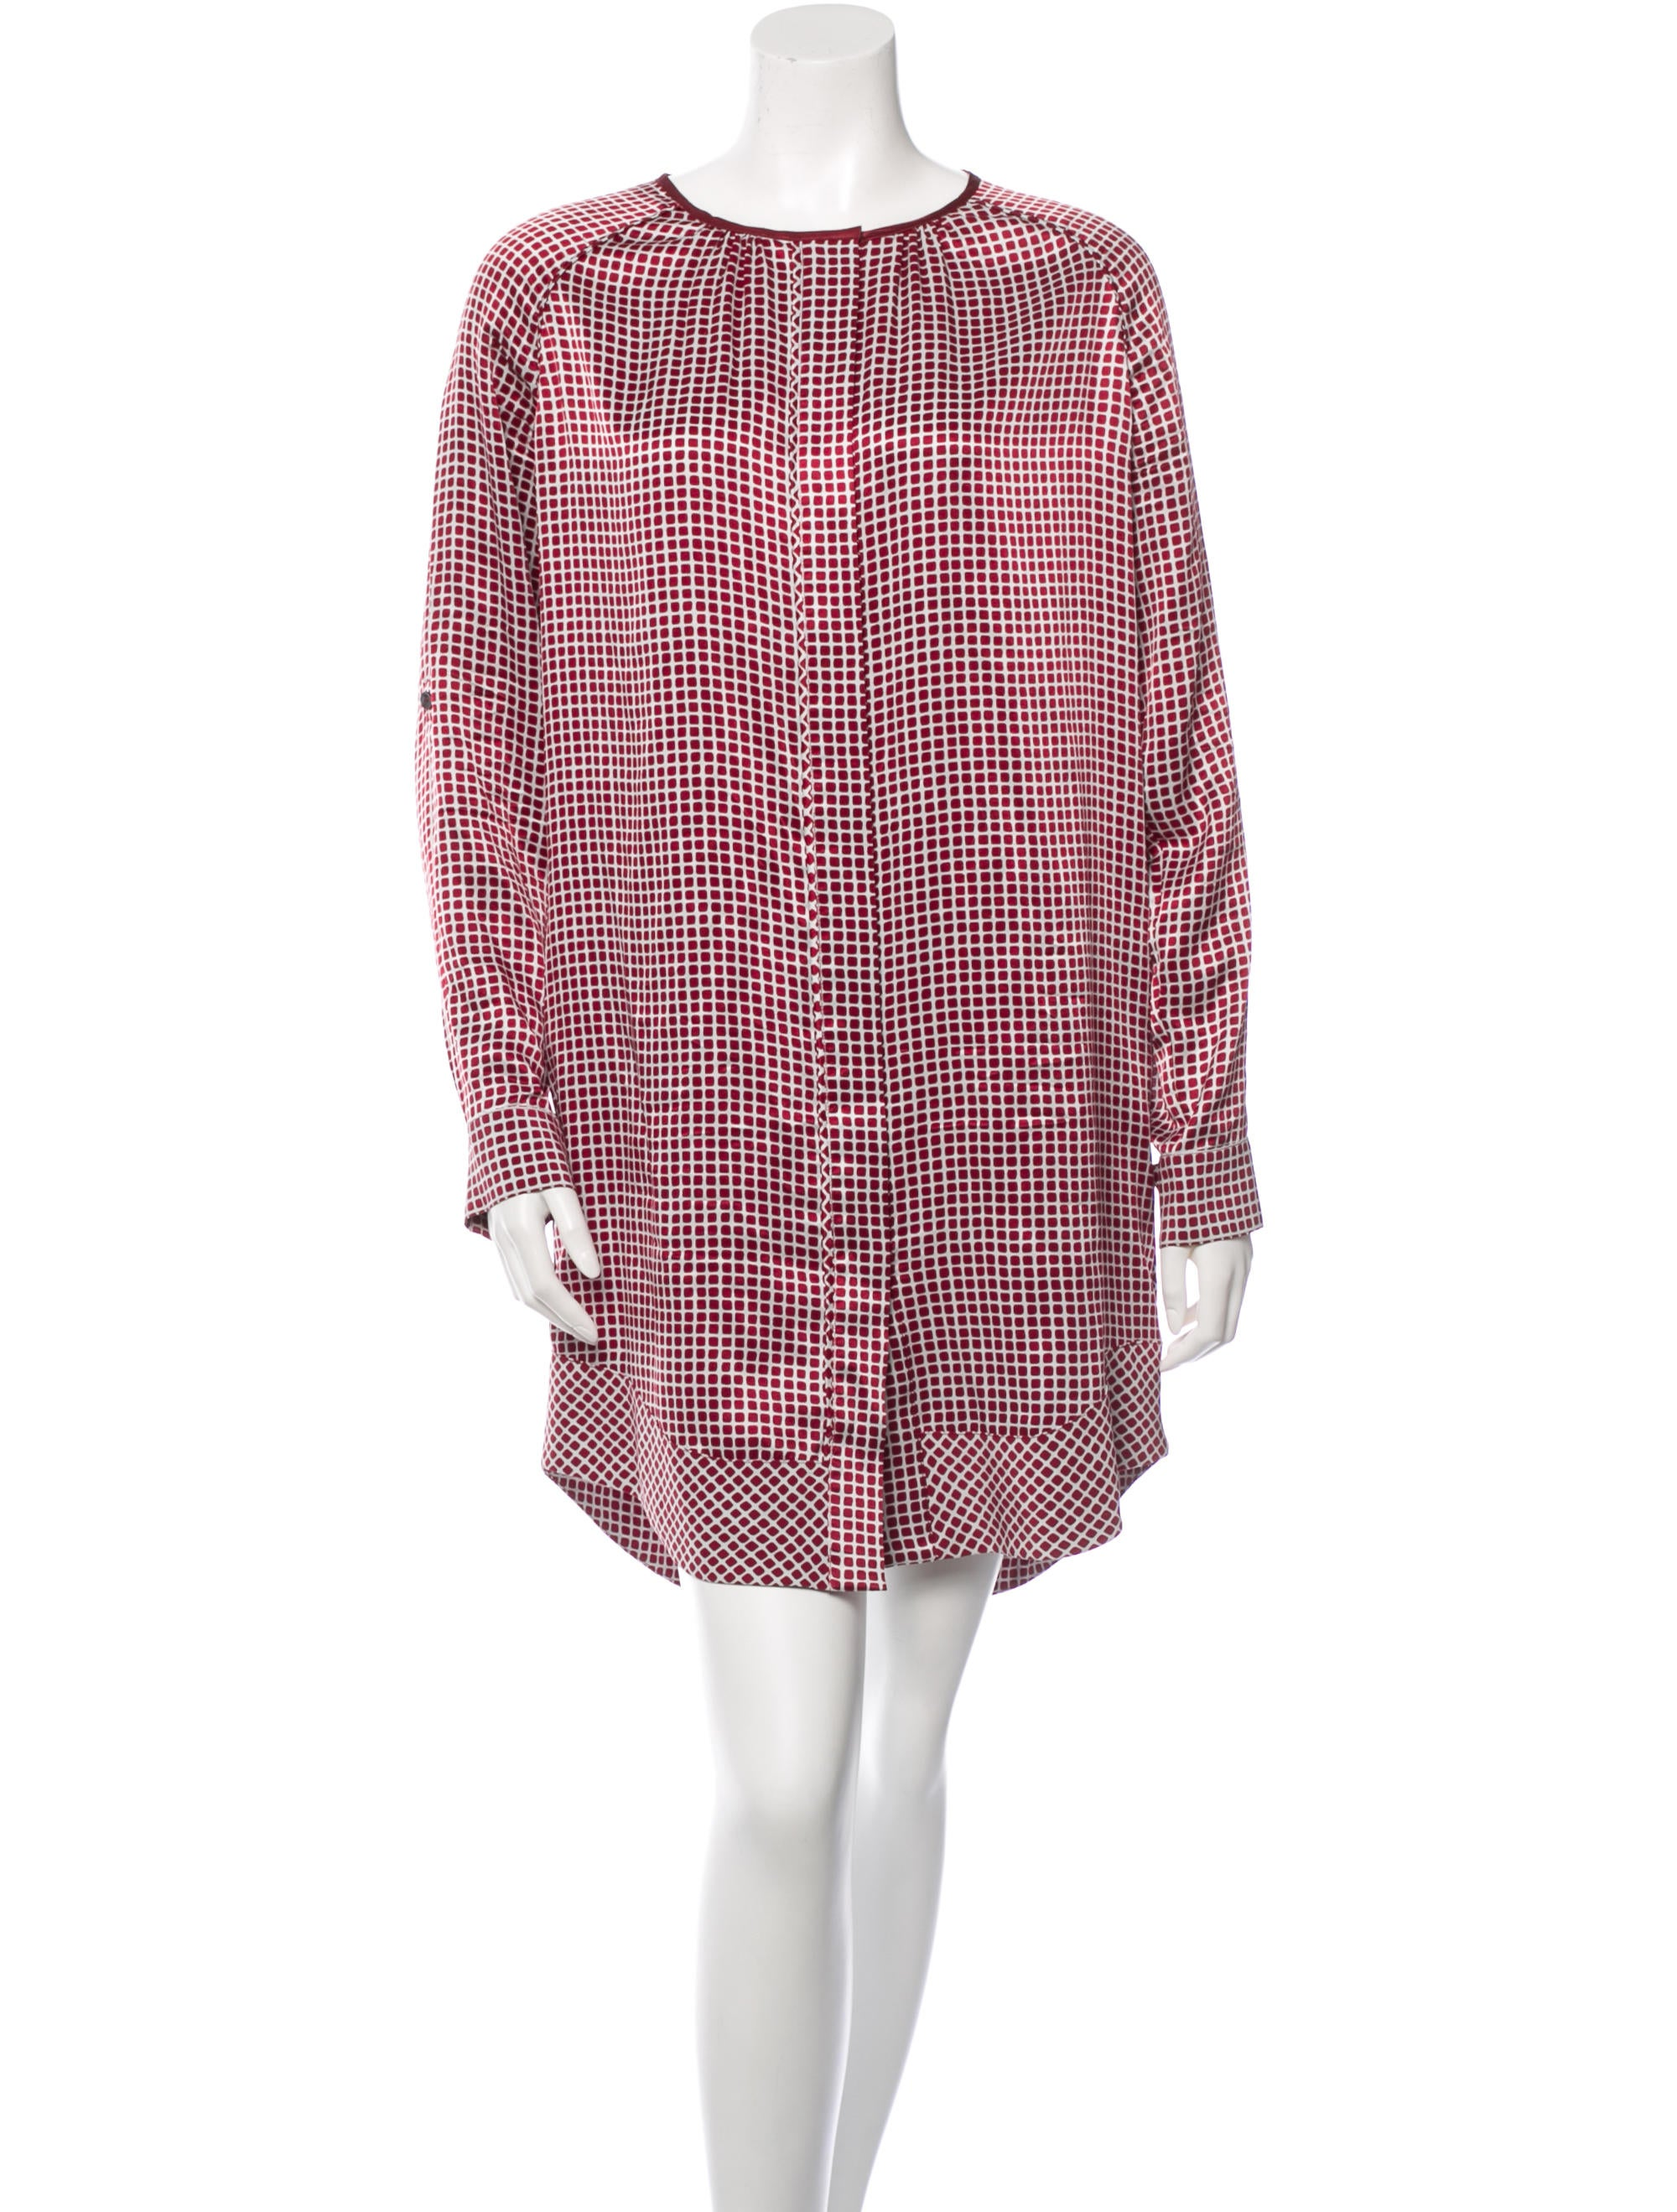 10 crosby derek lam silk shirt dress dresses wdl21749 for Derek lam 10 crosby shirt dress